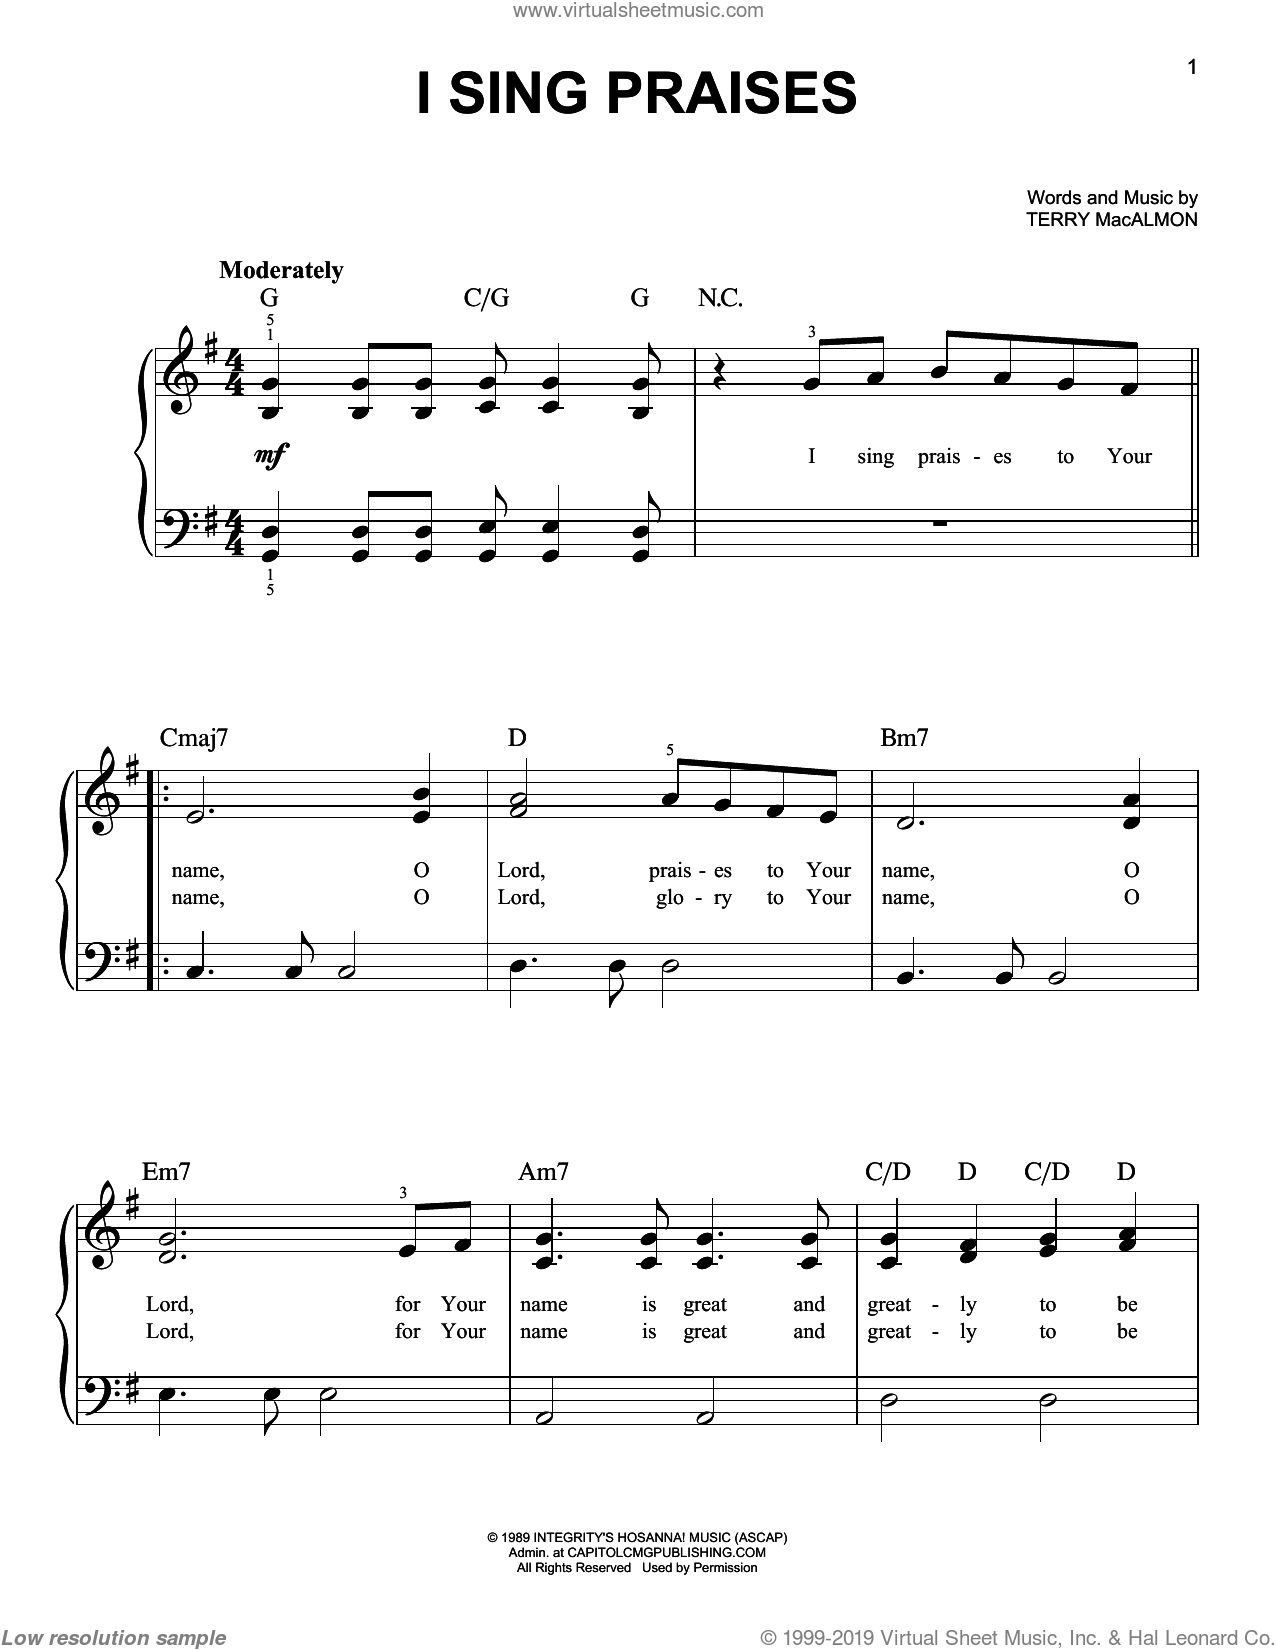 I Sing Praises sheet music for piano solo by Terry MacAlmon, easy. Score Image Preview.